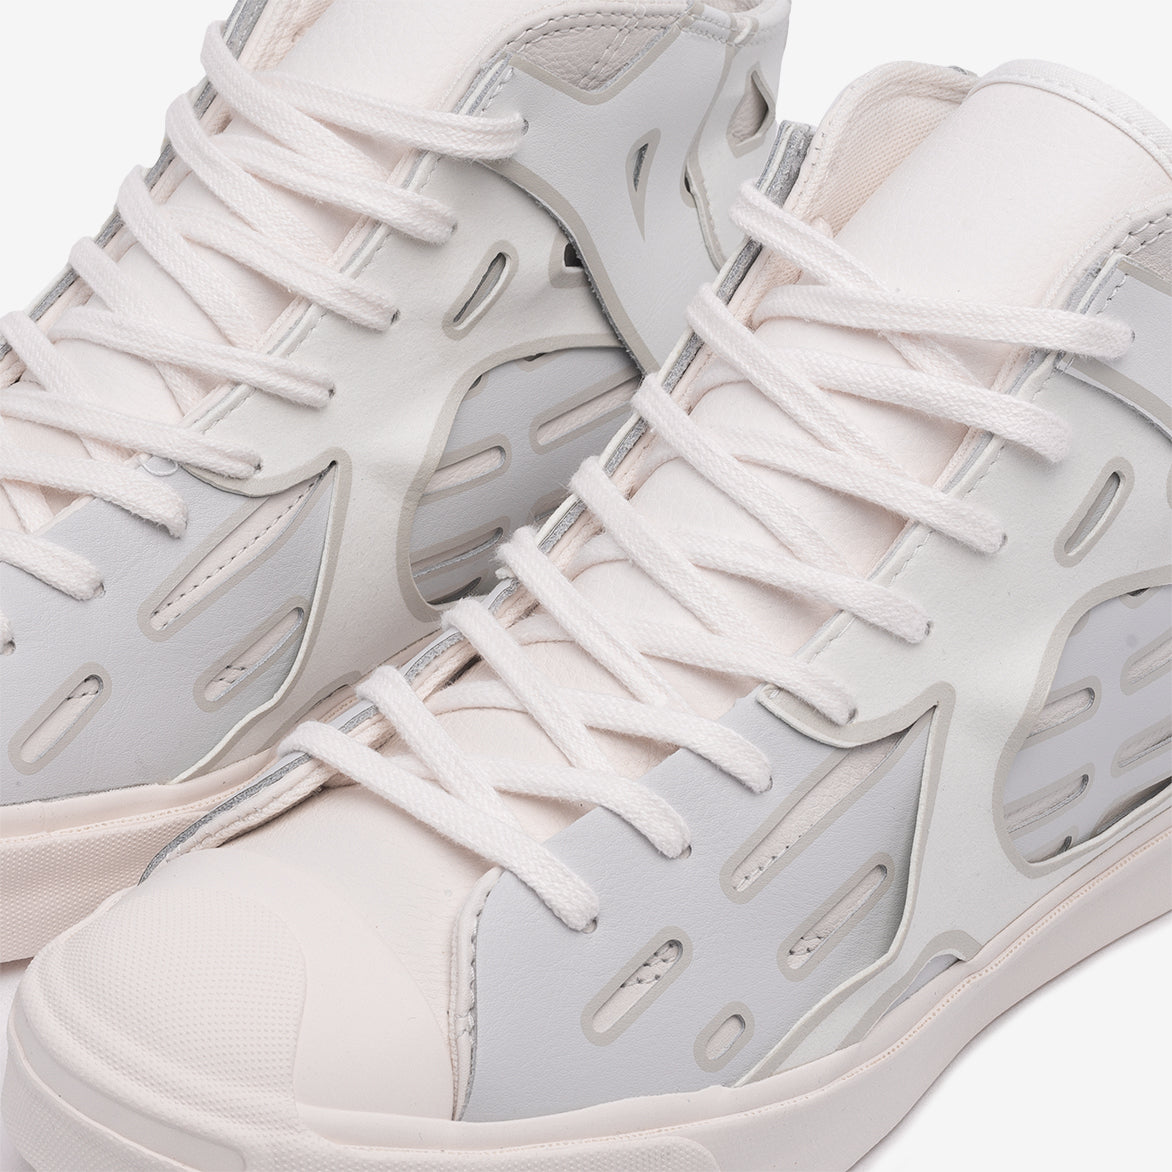 FENG CHEN WANG X CONVERSE JACK PURCELL MID - SEA SALT